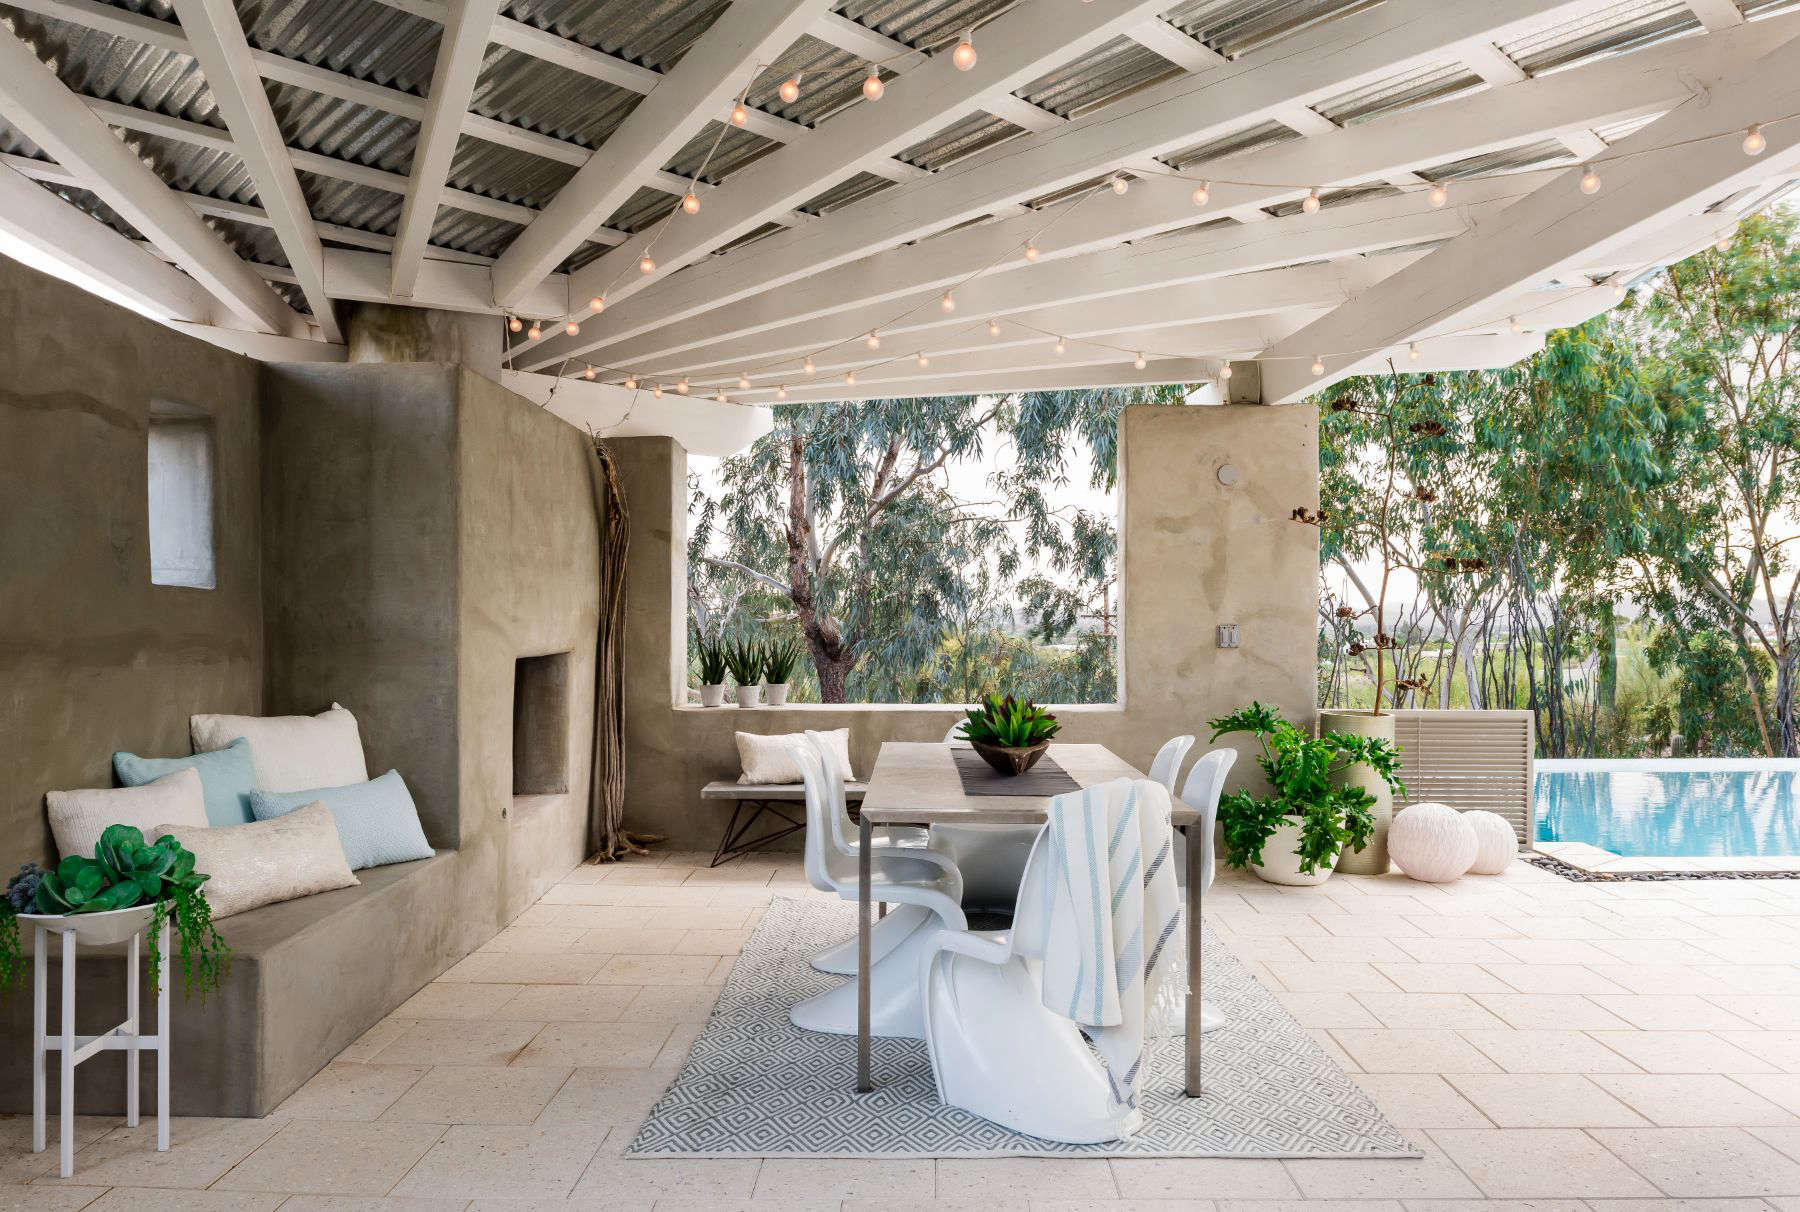 Best Hardscape 2017: A Cooling Room in the Desert by ...